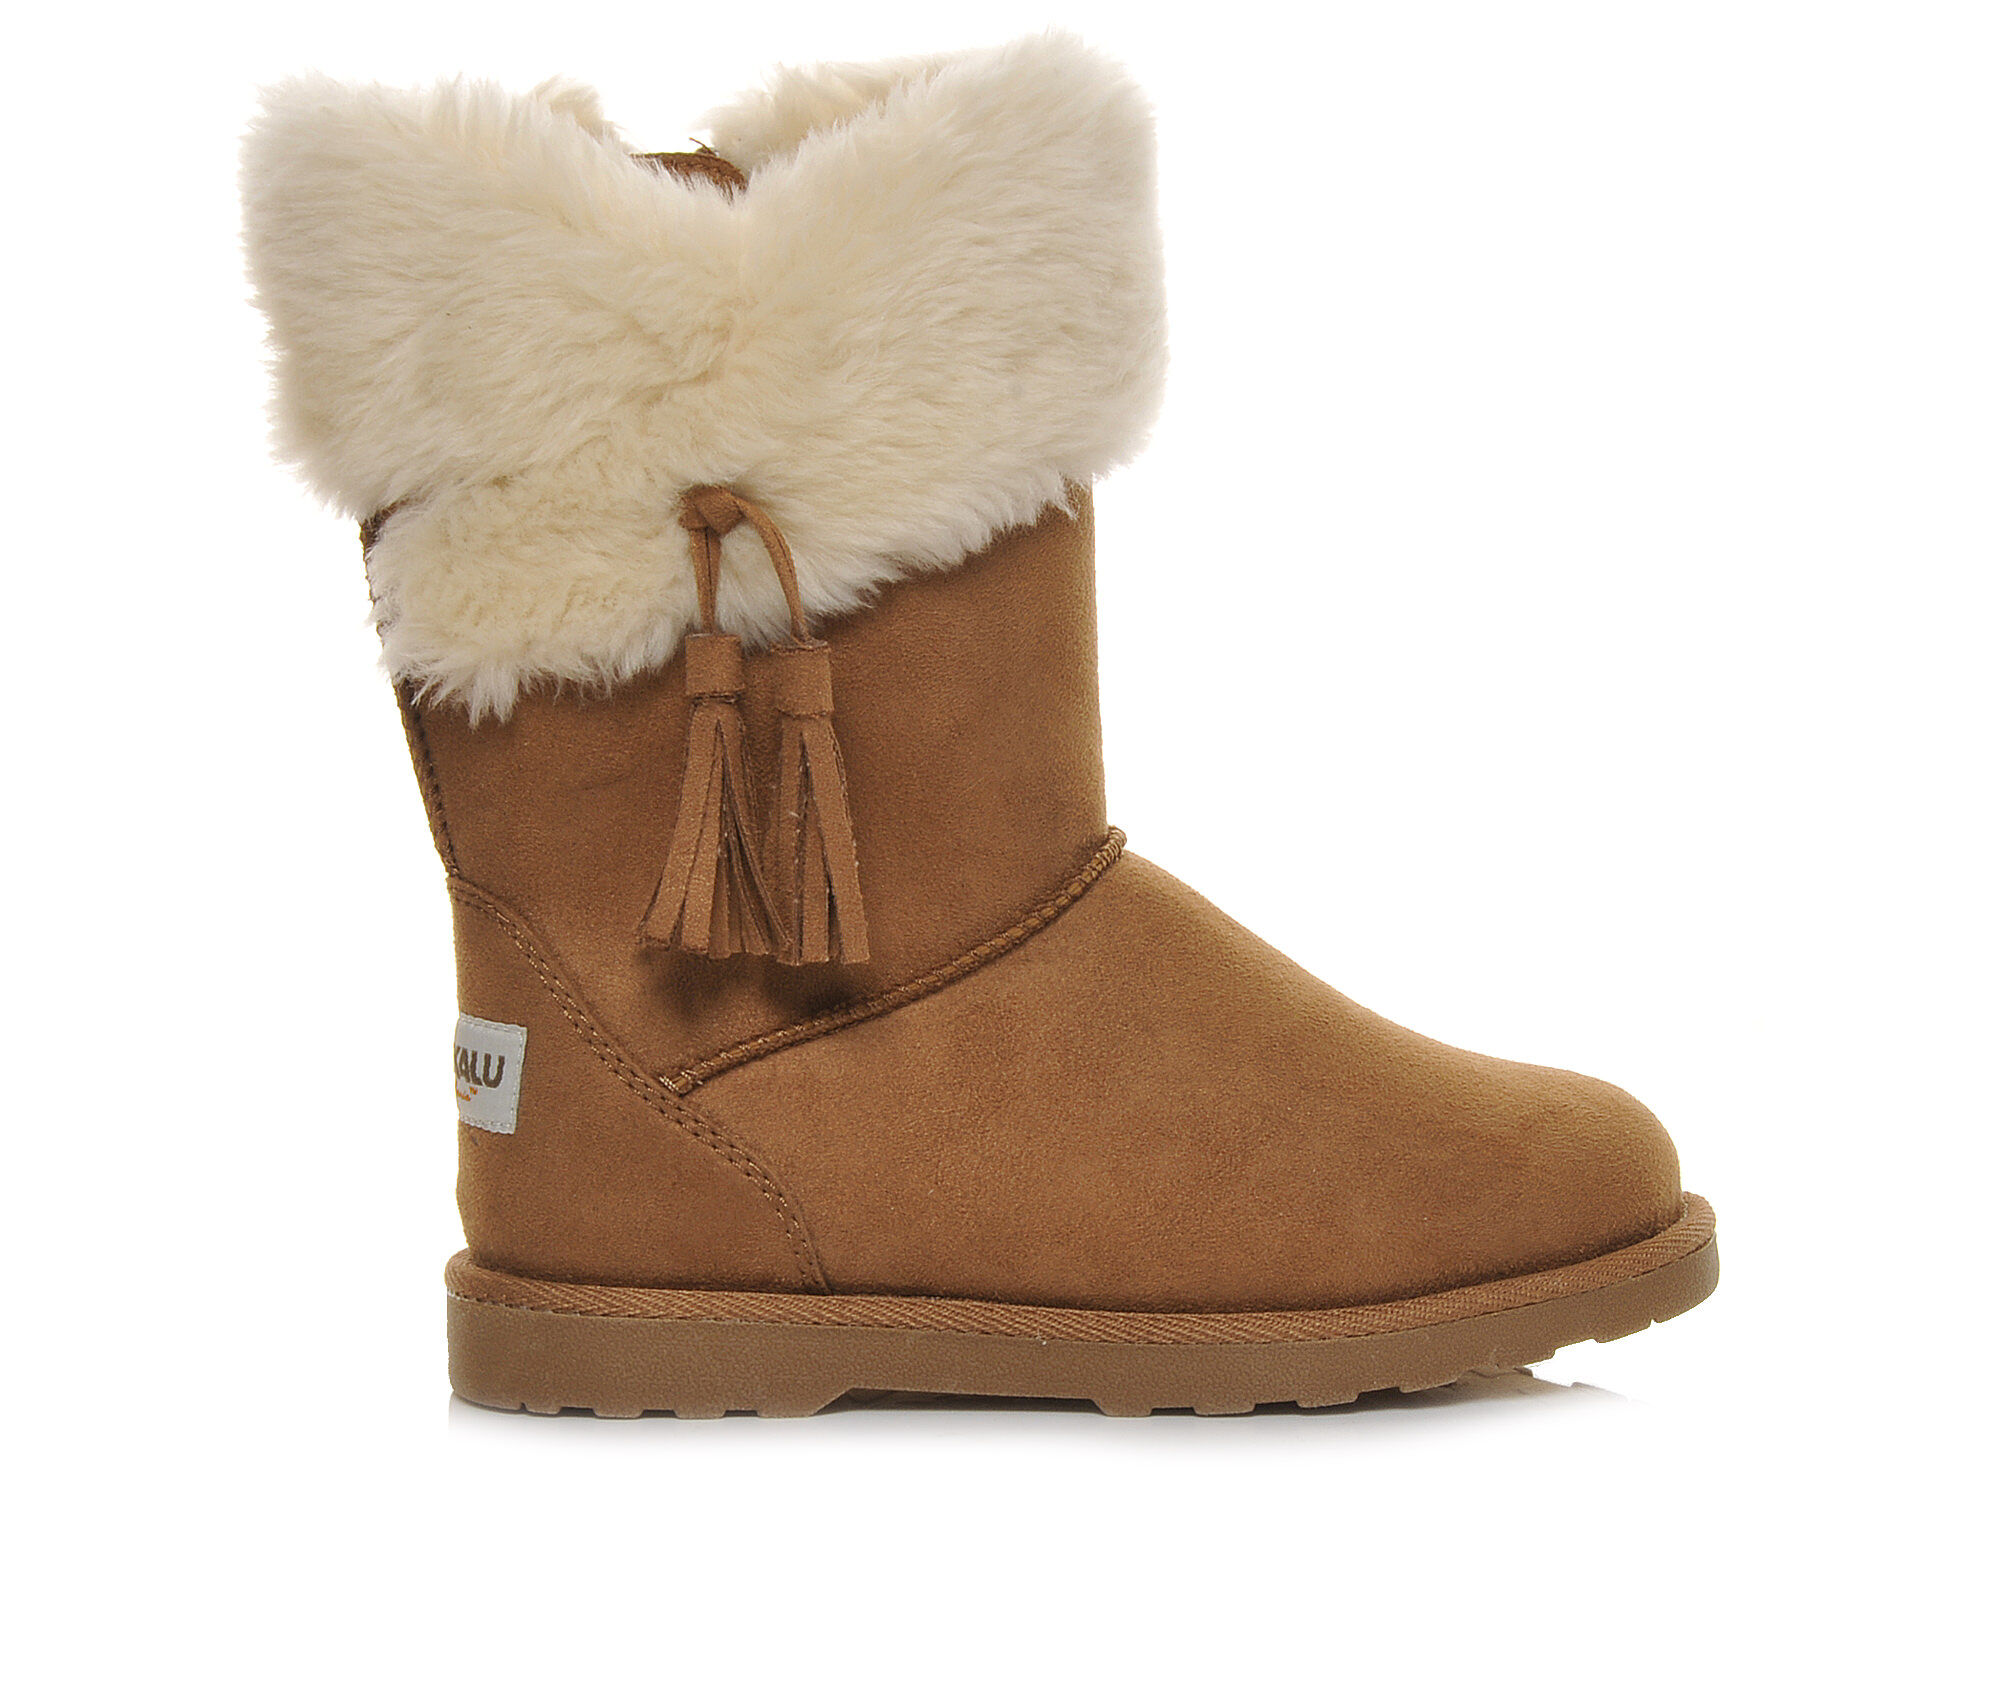 Kid Iceland Winter Boots | Shoe Carnival